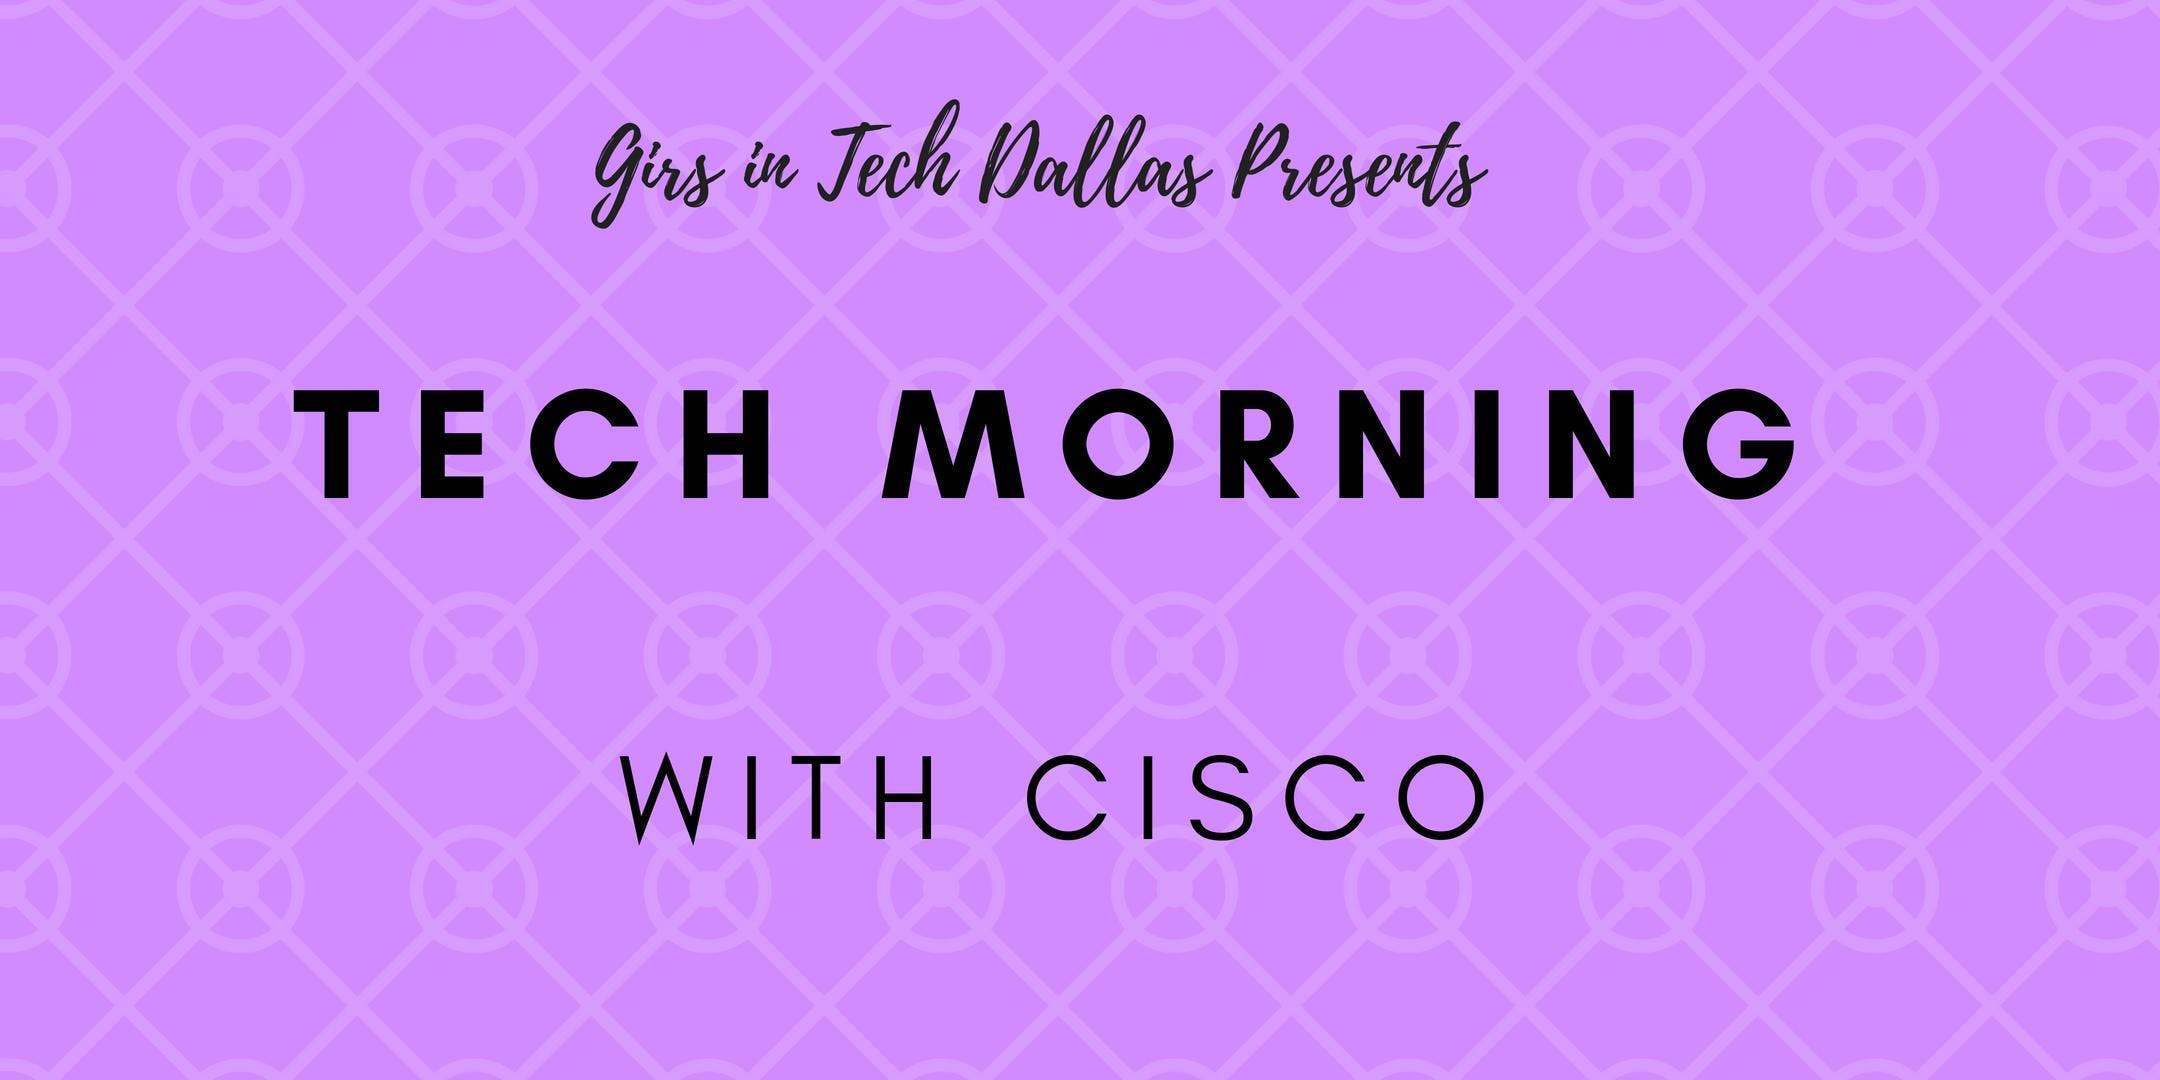 Tech Morning @ Cisco (Ages 10-15 years)